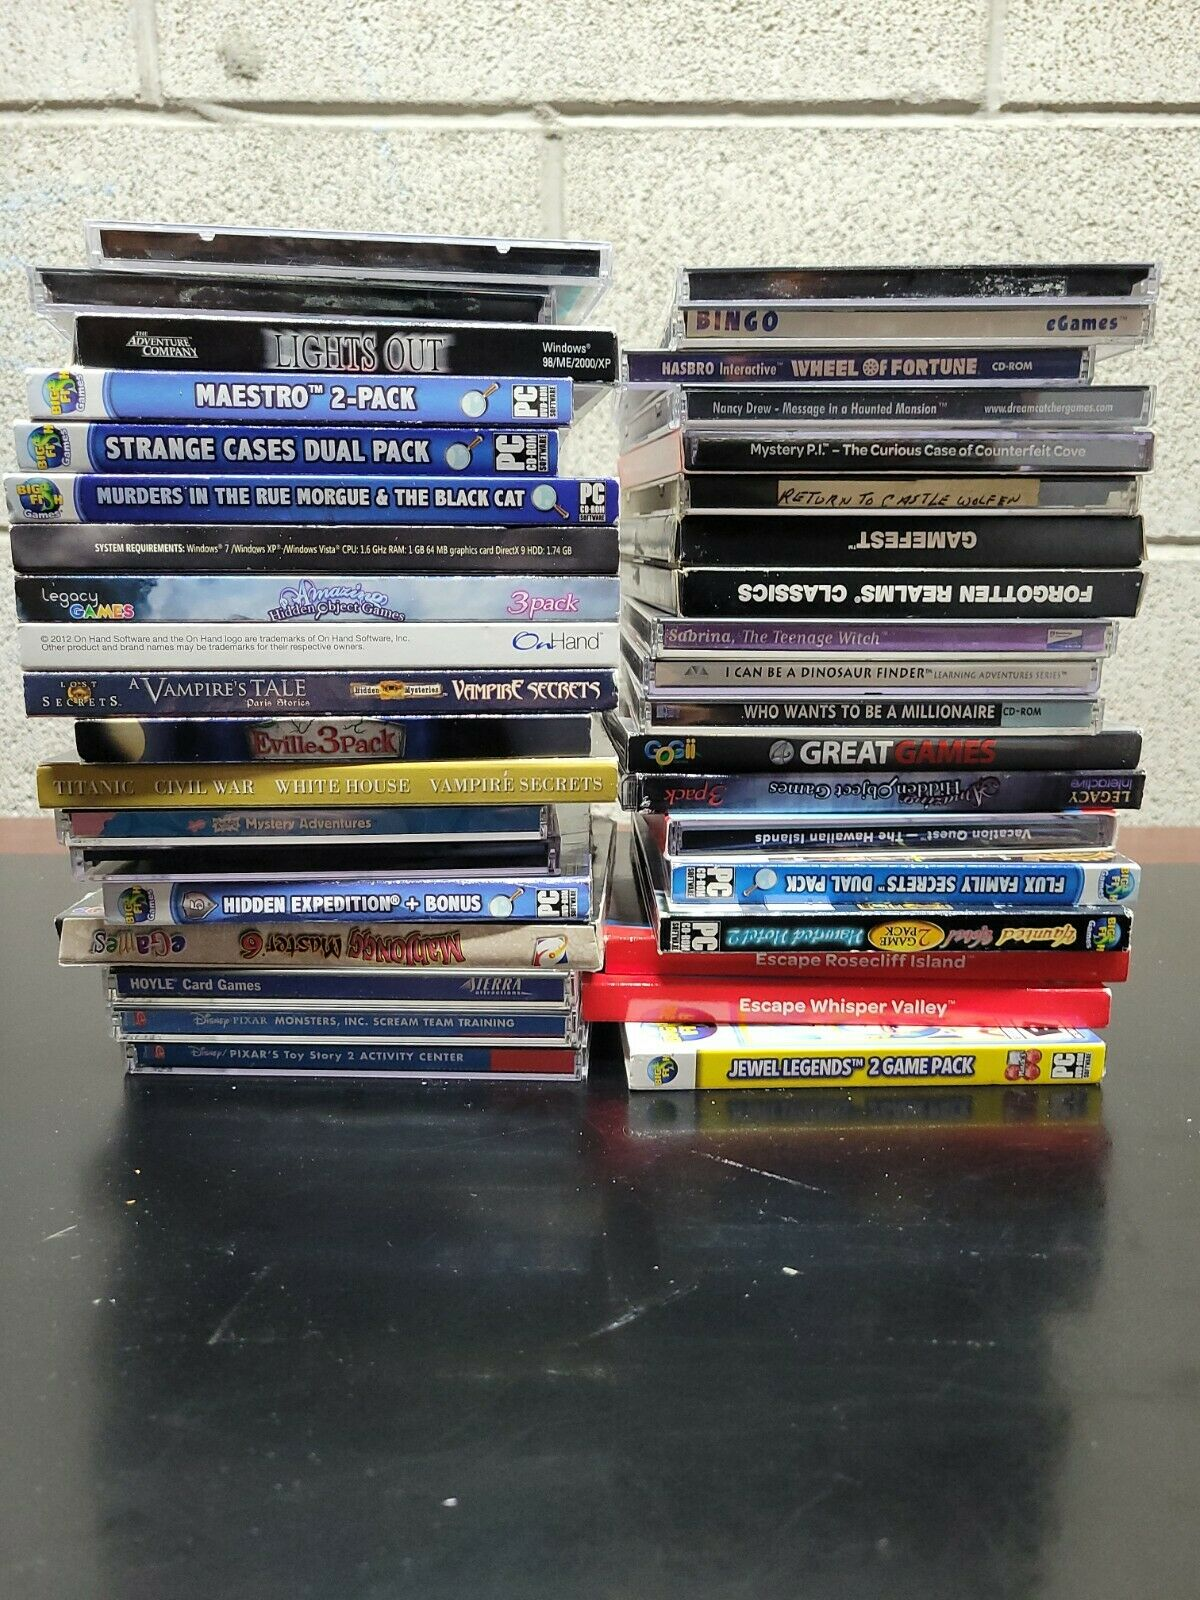 Game LOT OF 38 PC CD-ROM Games Computer Games Big Fish, Nancy Drew, Lights Out